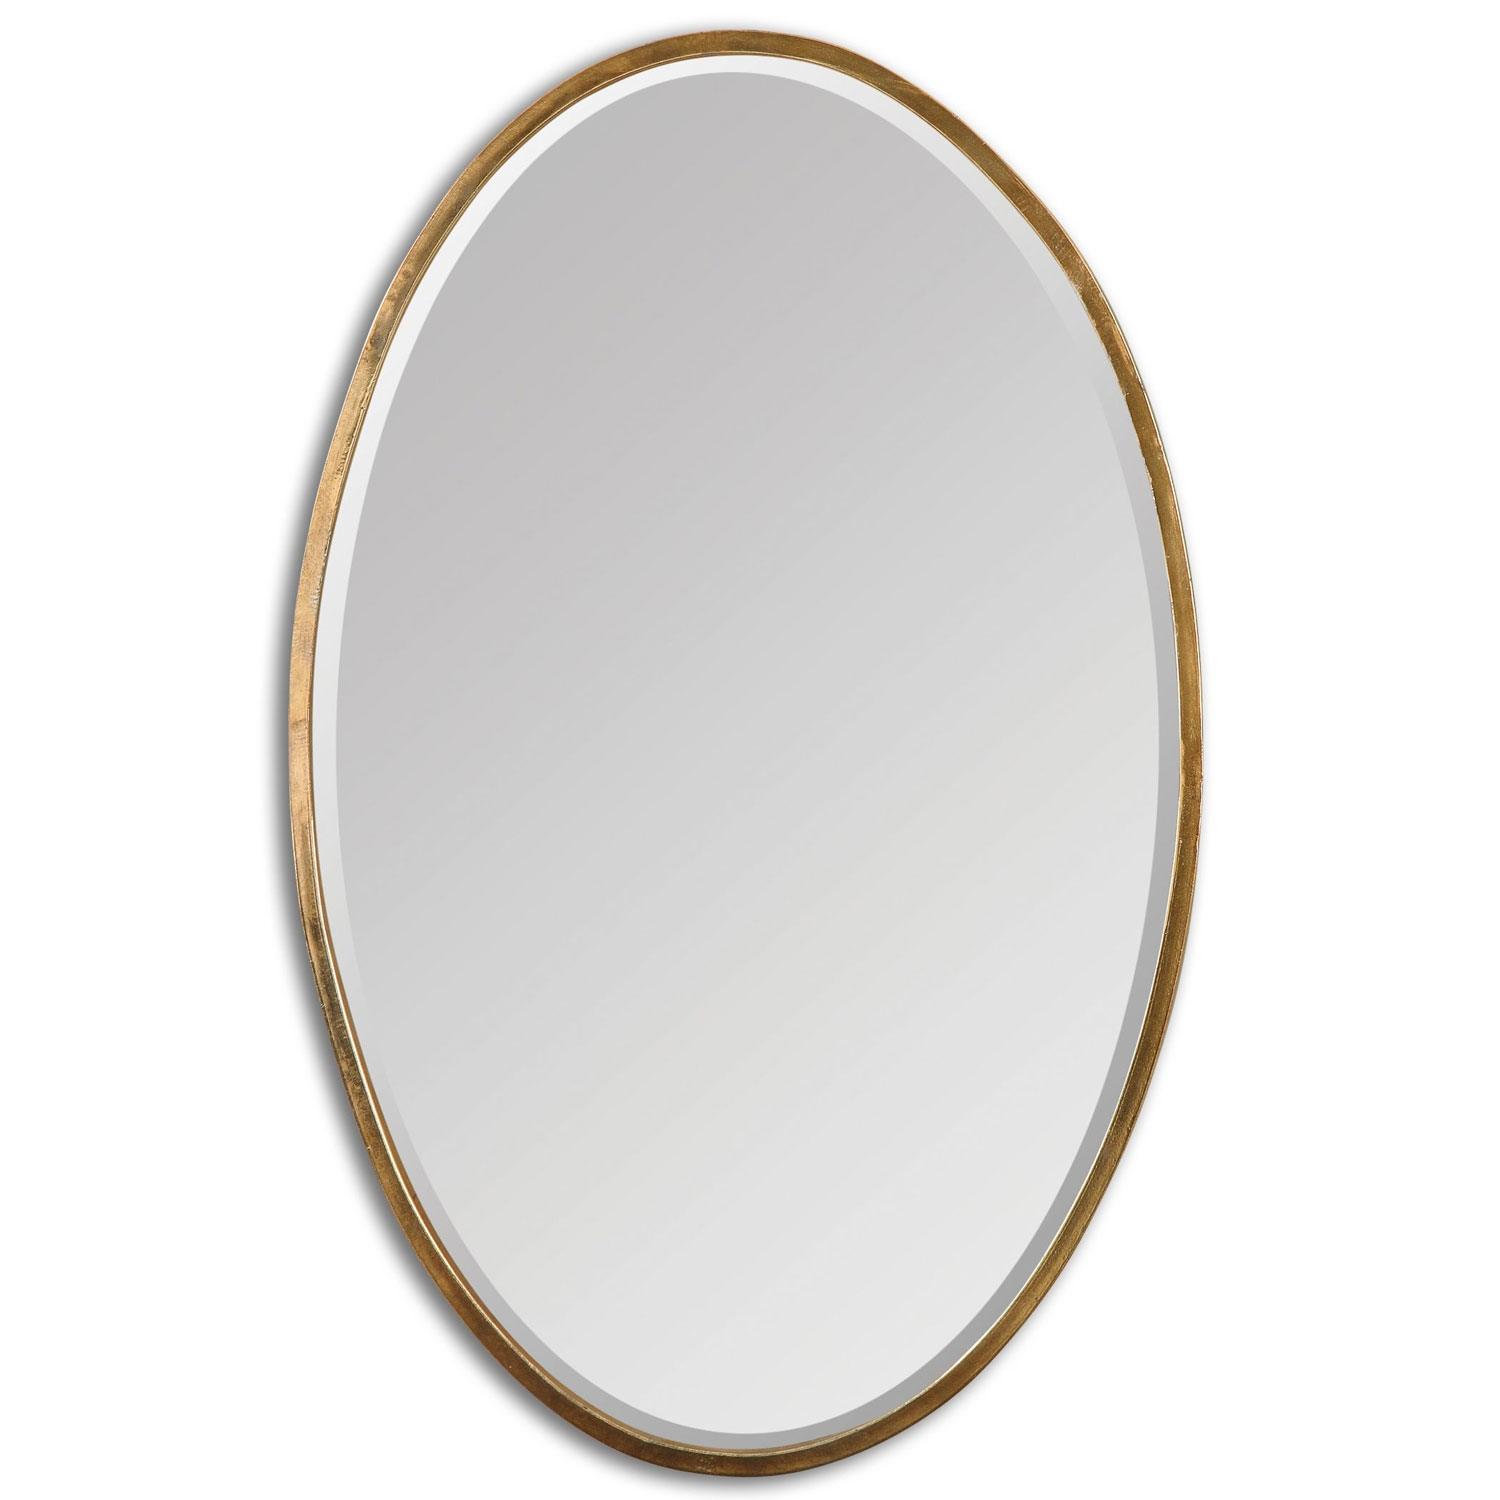 Oval Wall Mirrors 270 Kitchen Bathroom Frameless Vanity Options With Large Oval Wall Mirror (Image 13 of 14)